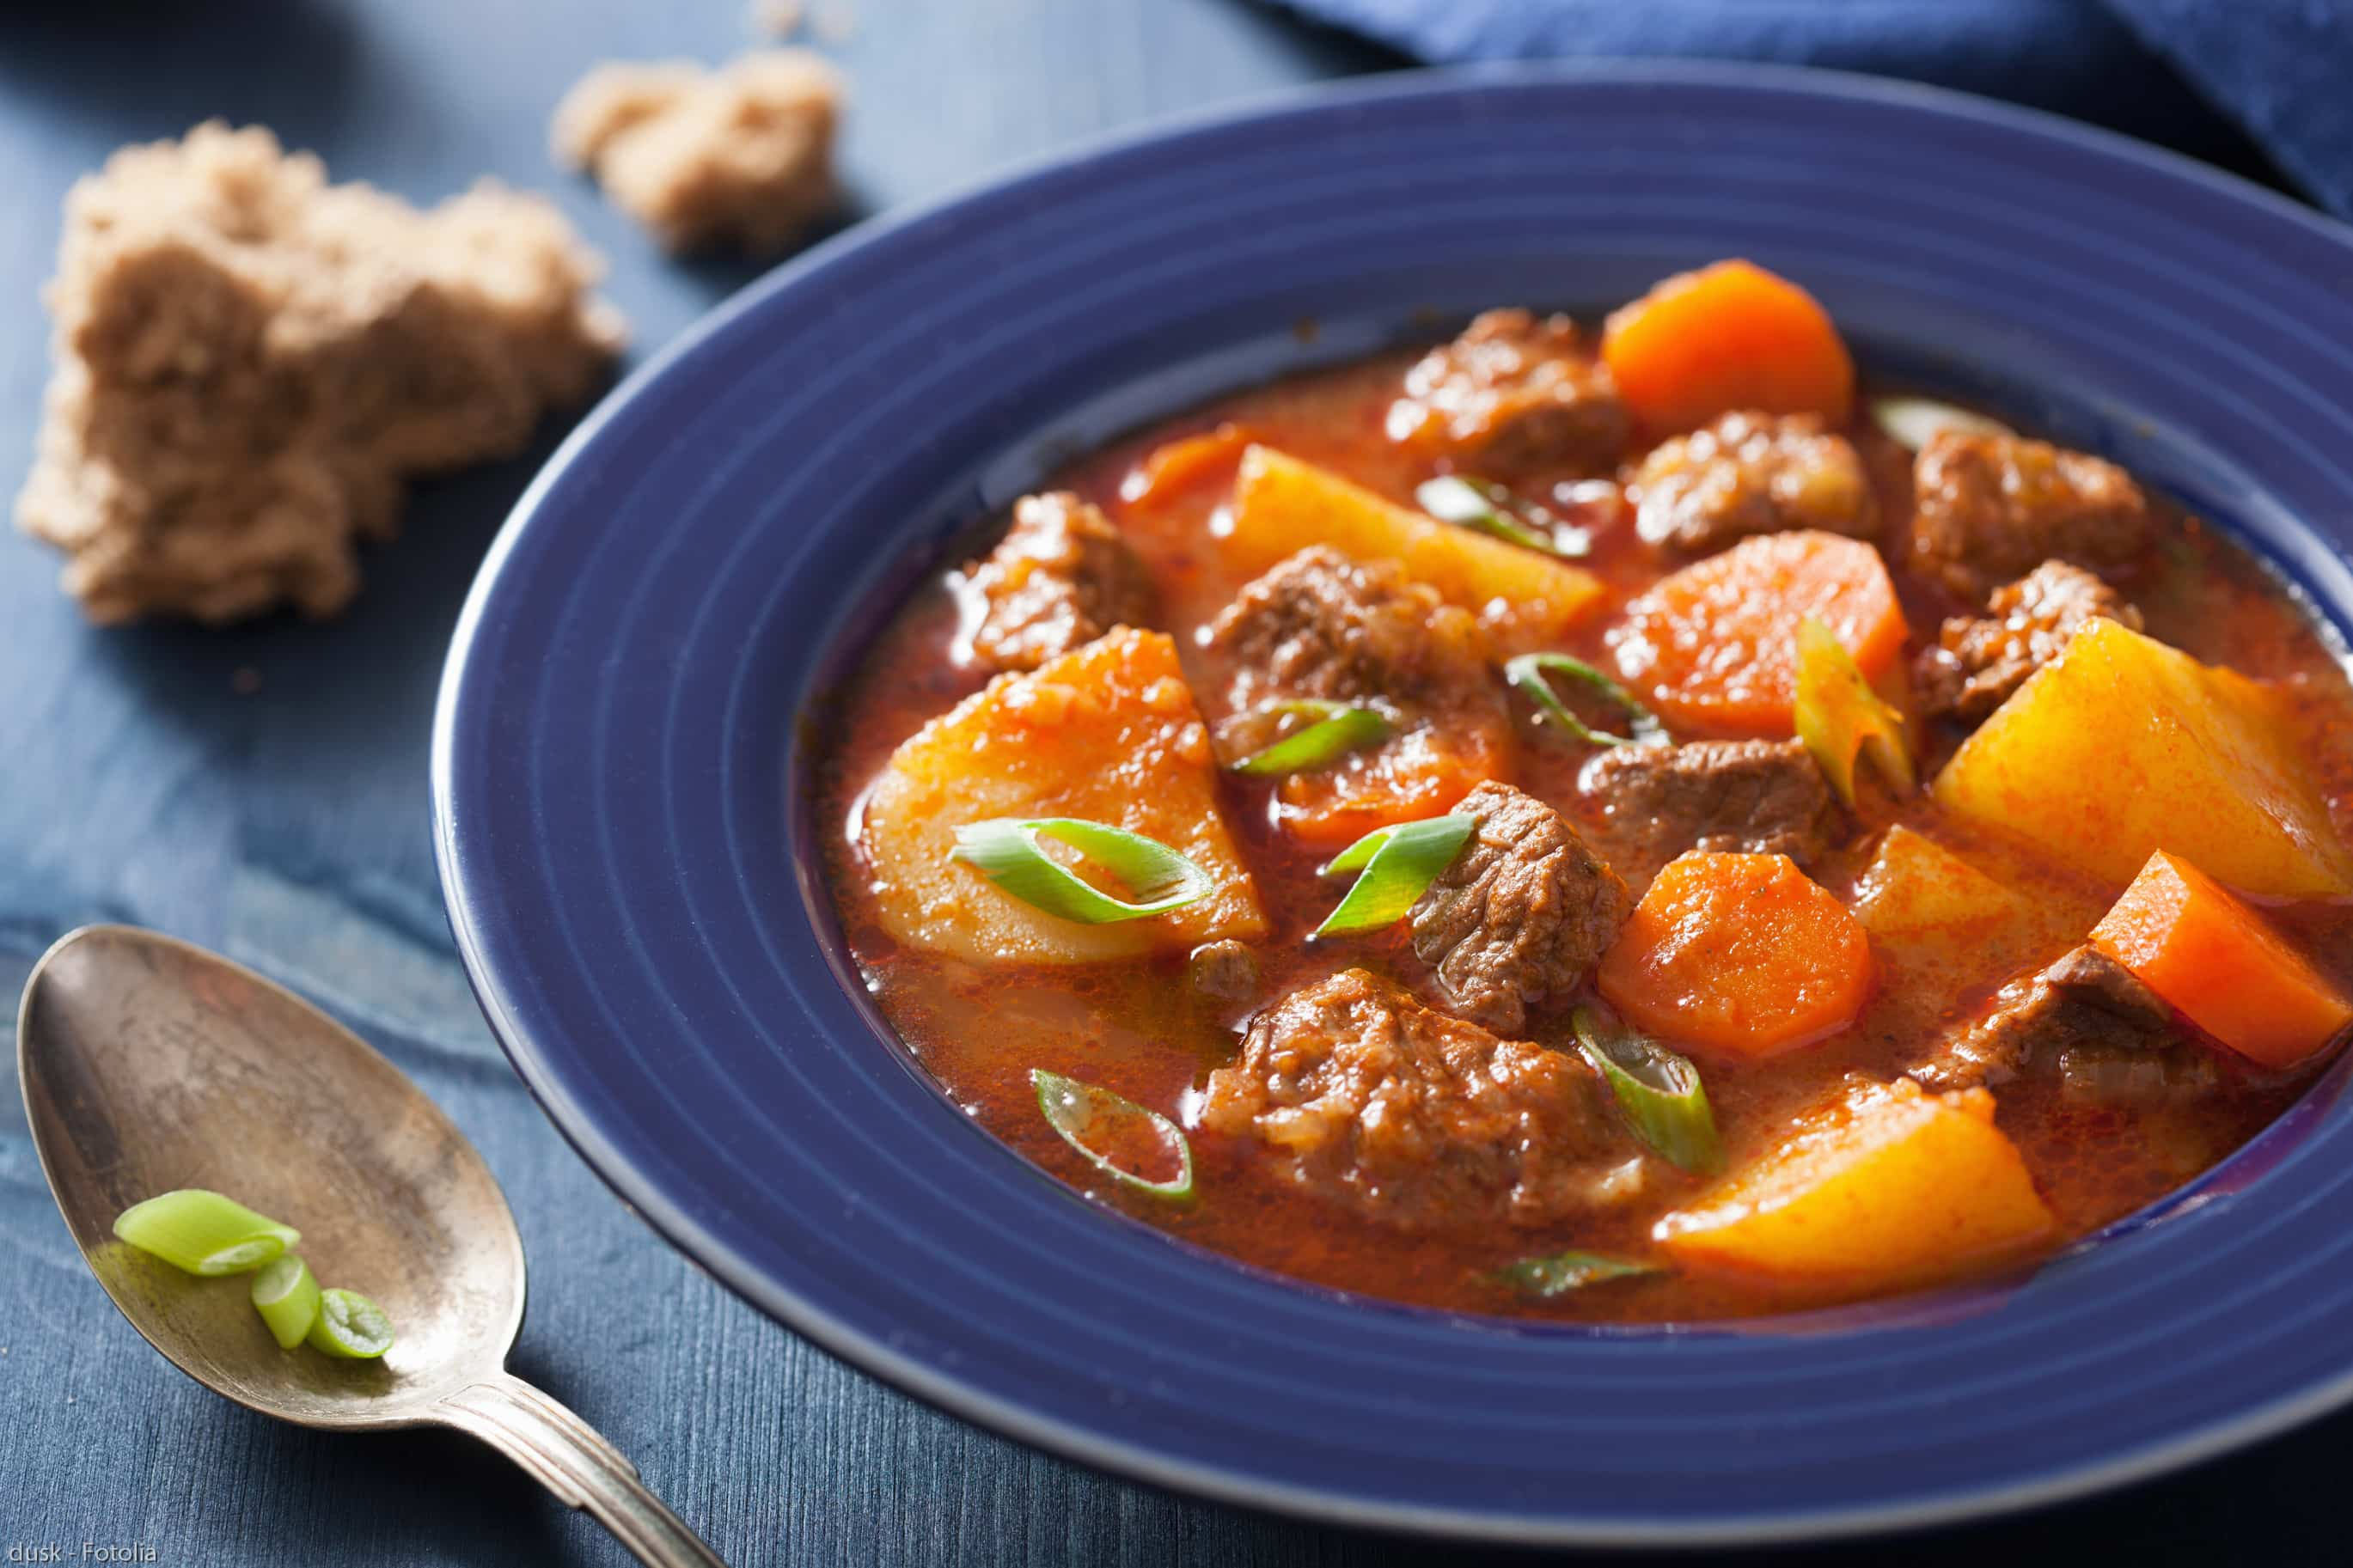 Crockpot Beef Stew 6 Points Laaloosh